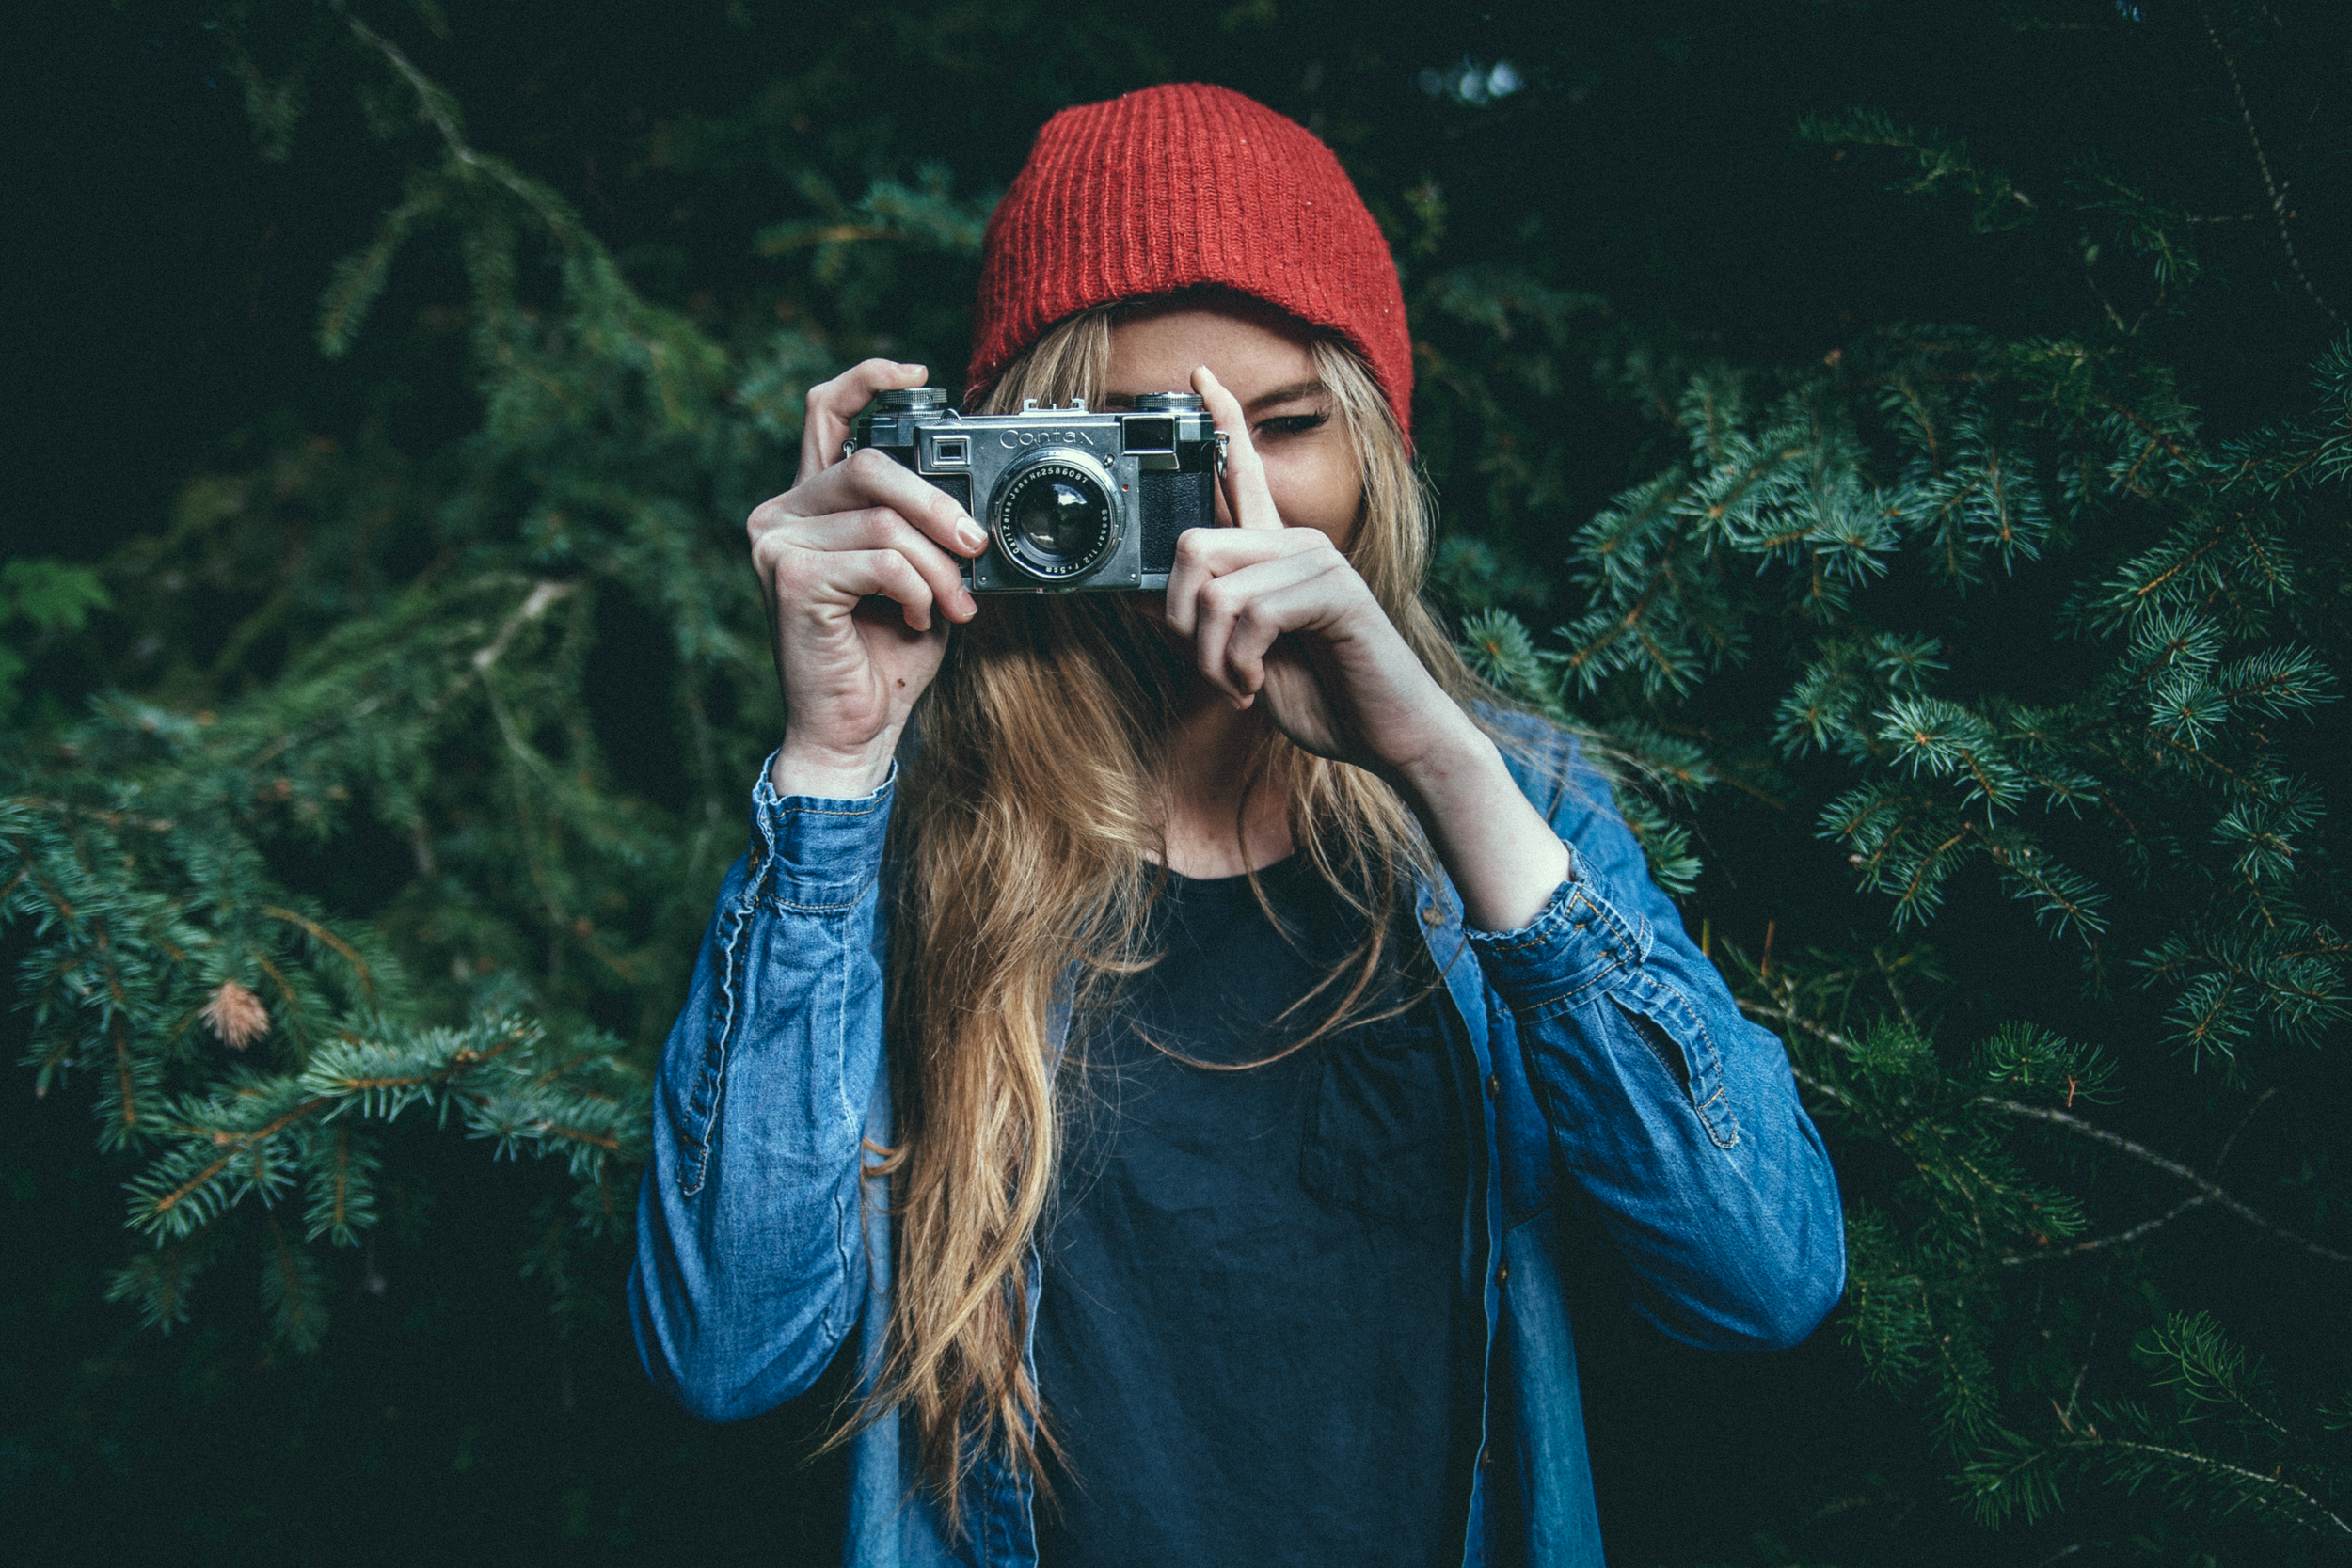 hipster photographer girl